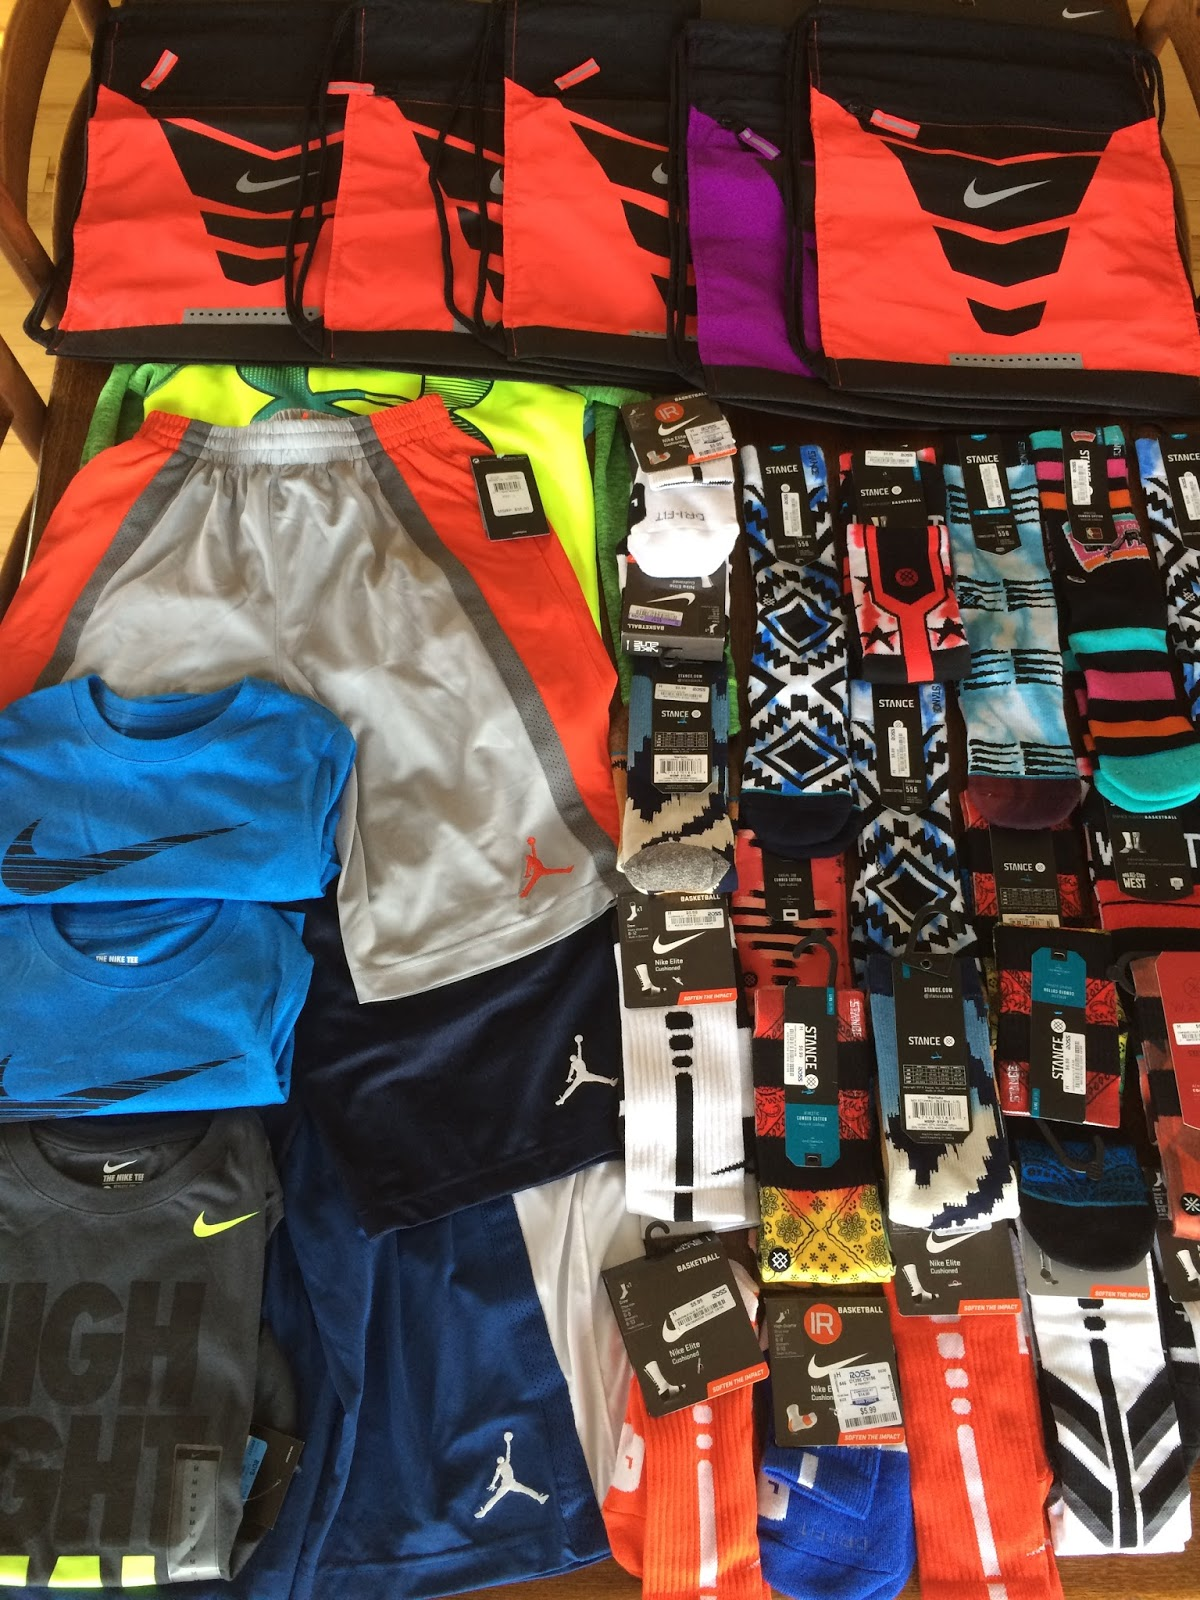 on sale 413df d9fc2 Here are some of our prizes this year! Stance and Elite socks, Hoodies, Jordan  shorts, Elite bags, etc. etc.